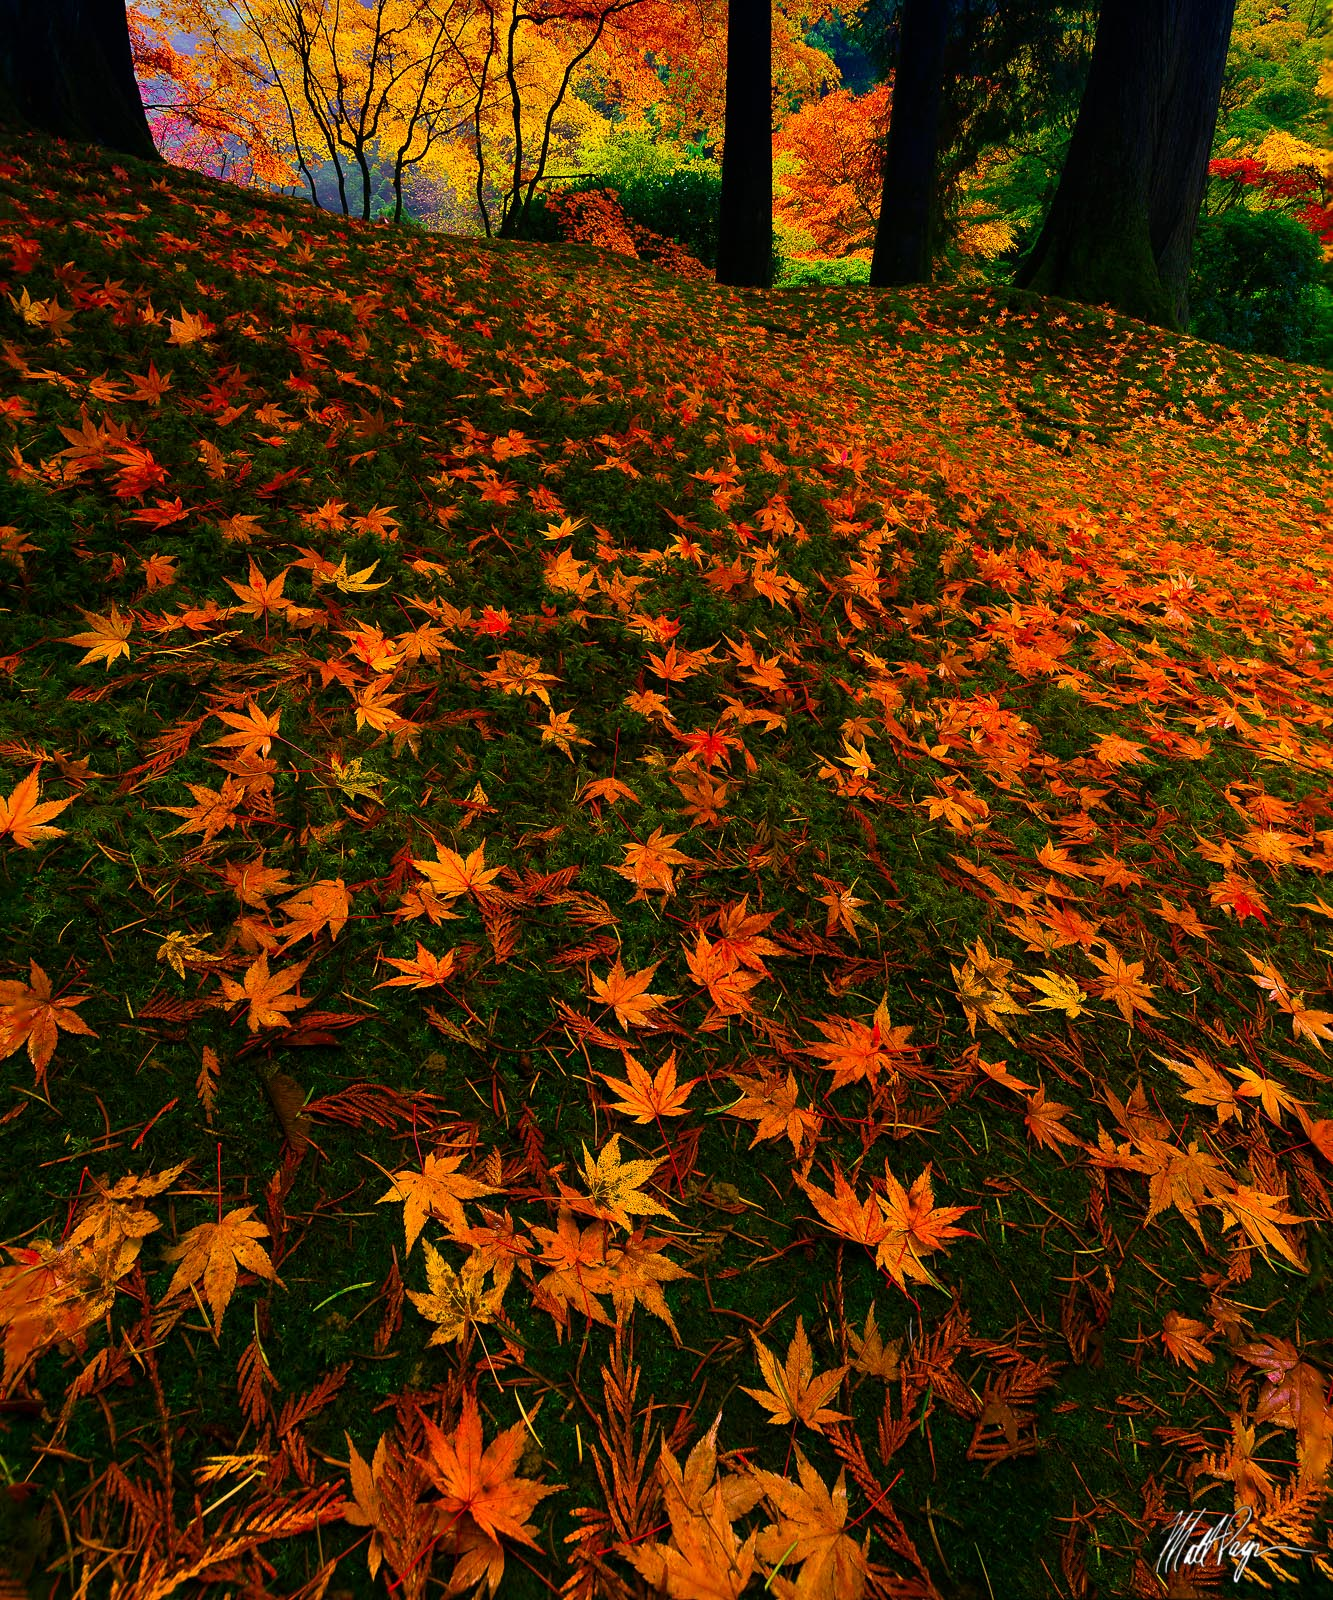 In this fall color autumn landscape fine art photograph, fallen leaves adorn the ground in the Portland Japanese Garden.&nbsp...